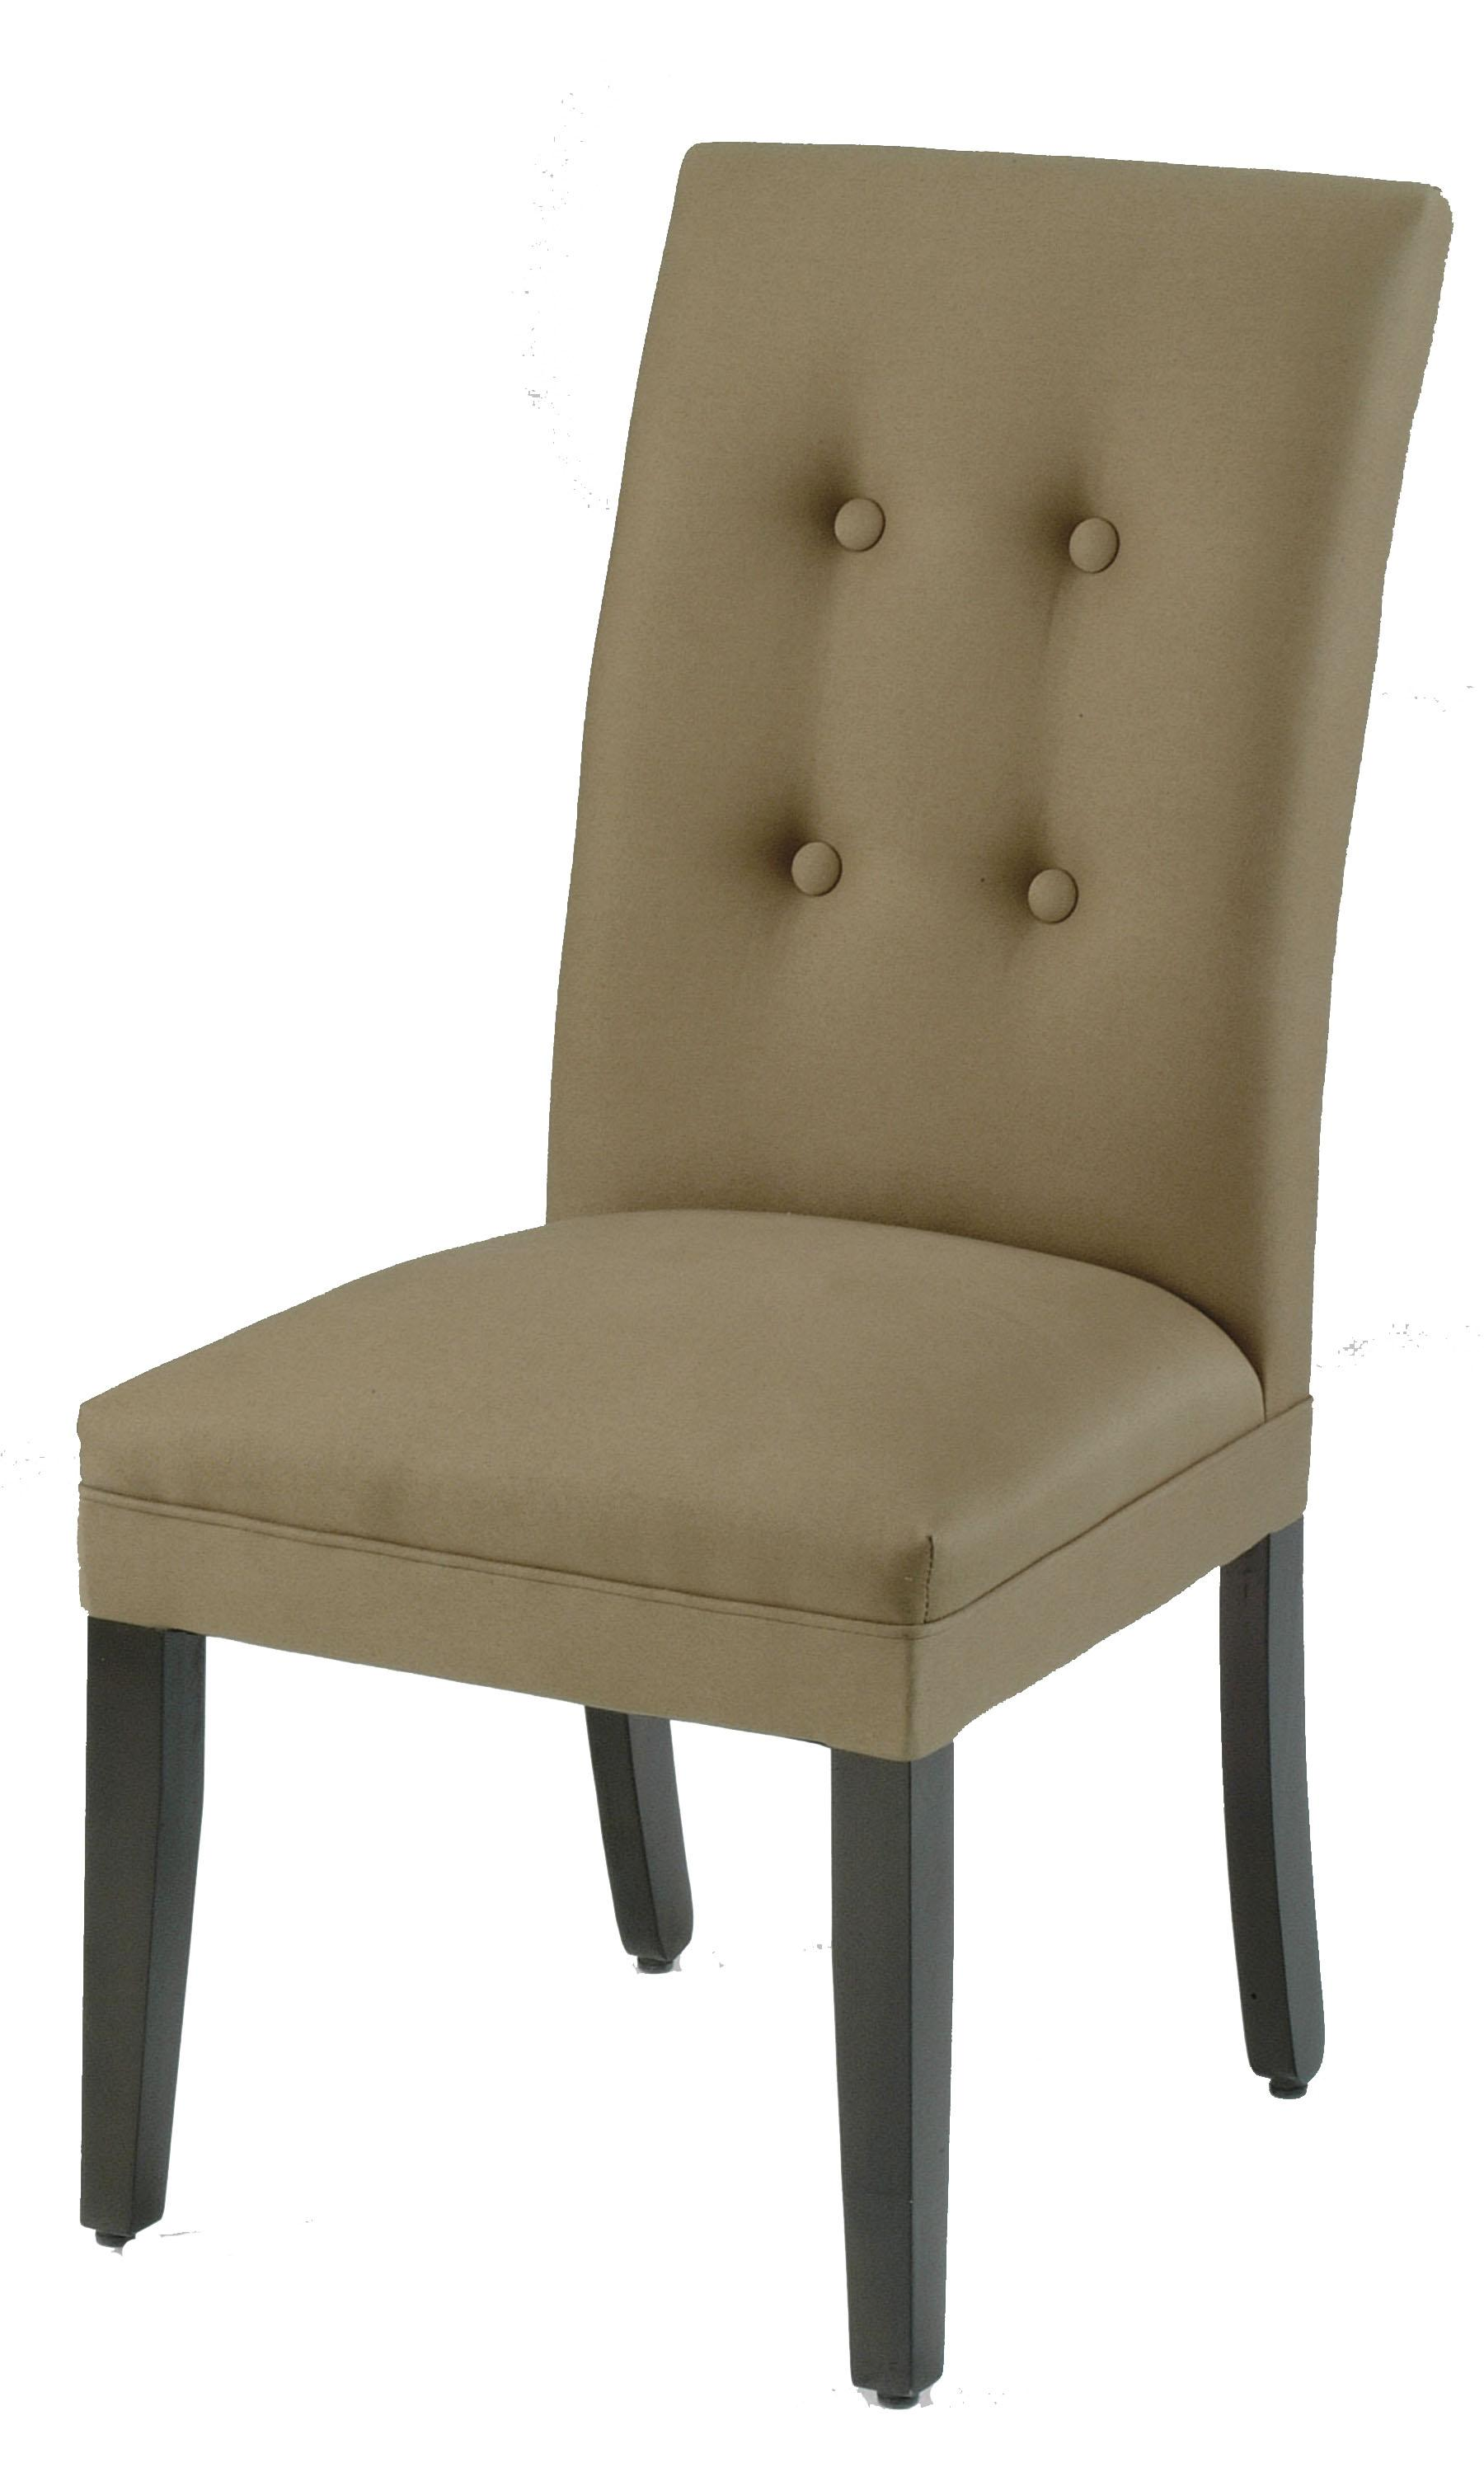 tufted accent chairs kids wicker rocking chair button parsons by cmi wolf and